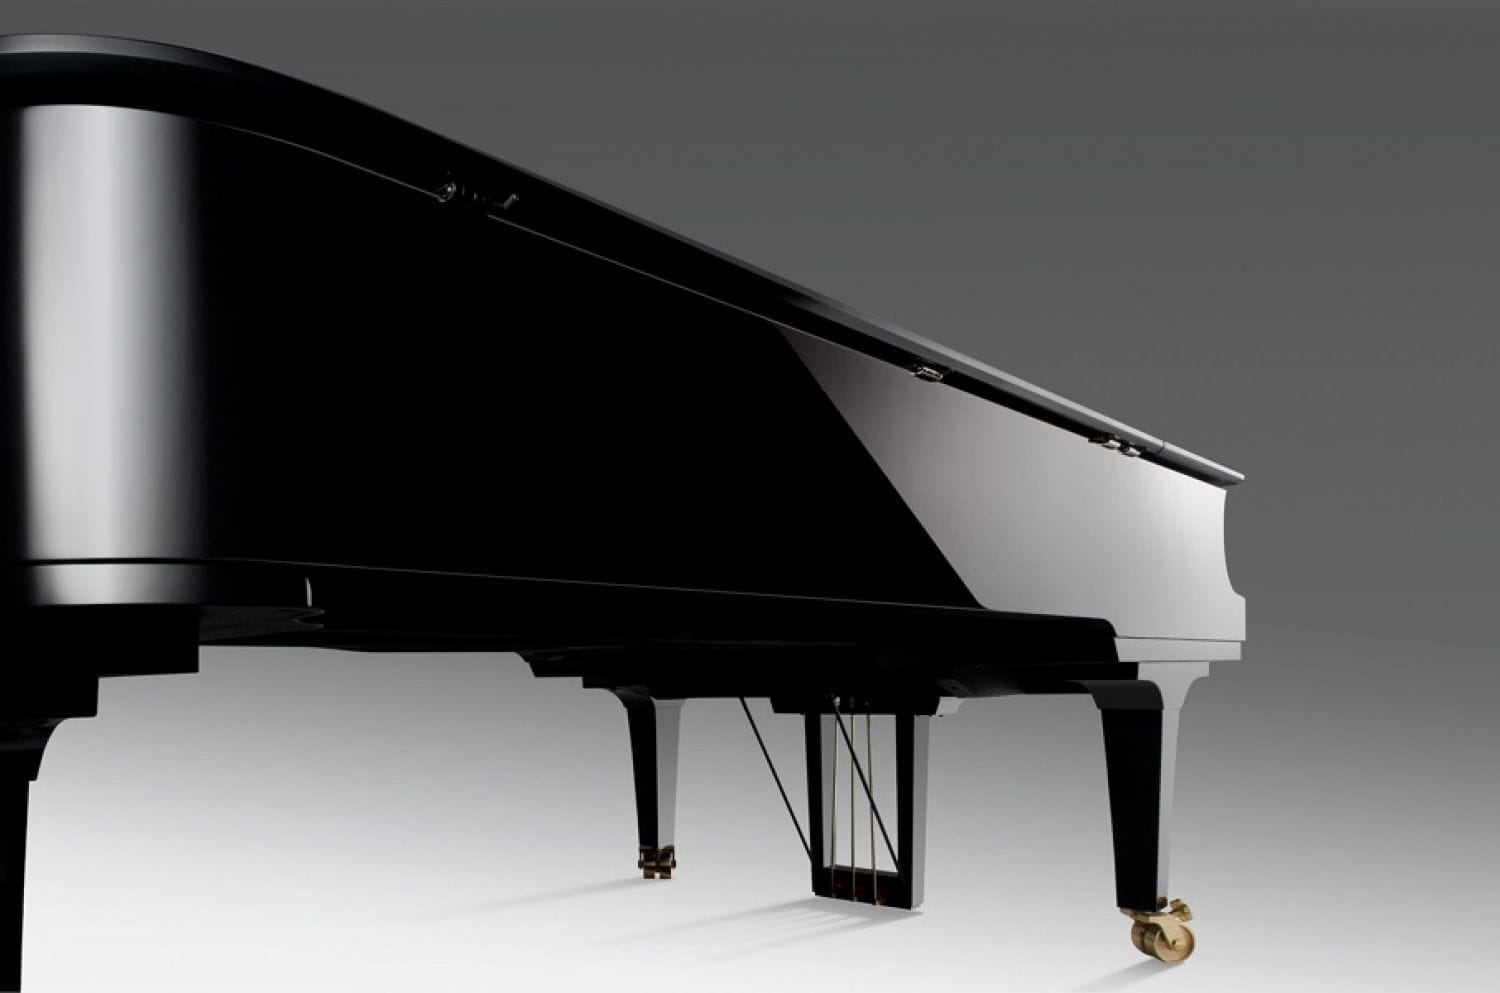 A view of the left side of a piano with a focus on the highly polished finish.